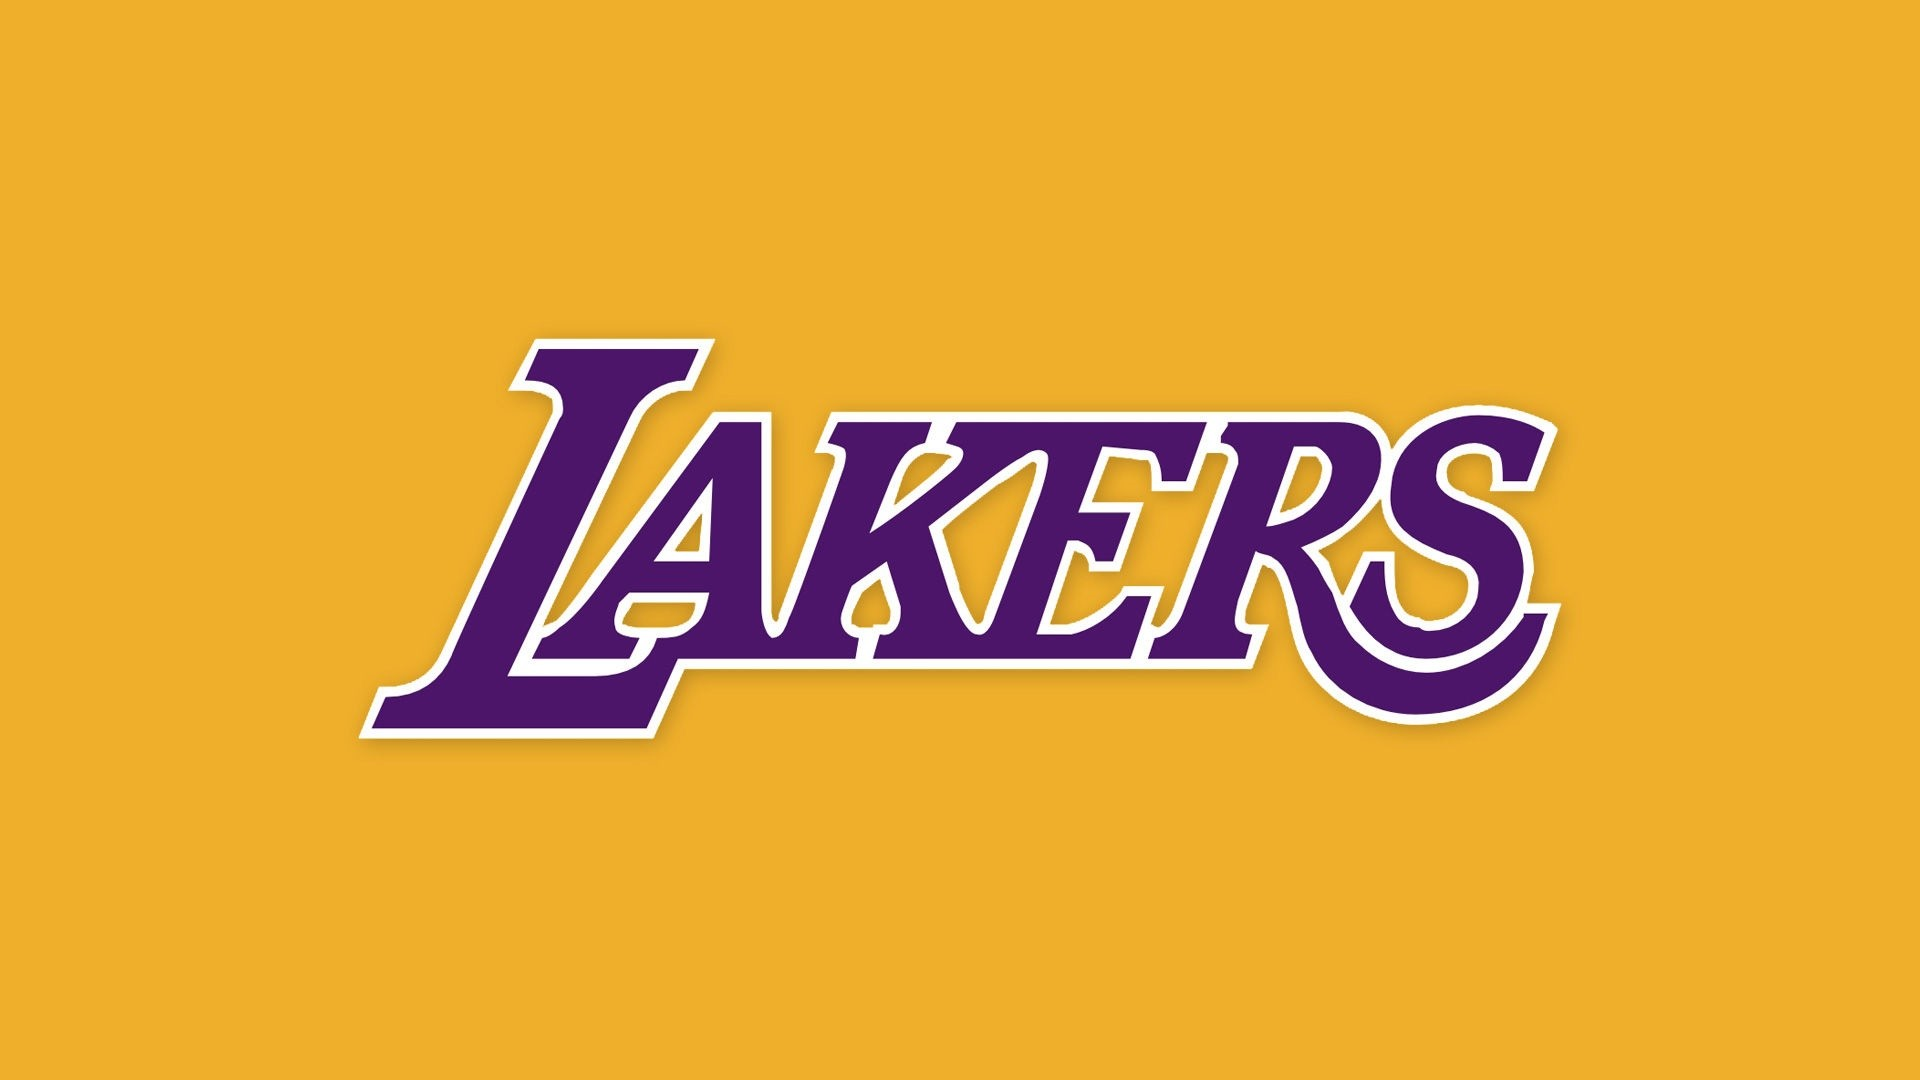 Res: 1920x1080, Los angeles lakers wallpapers nba basketball team.